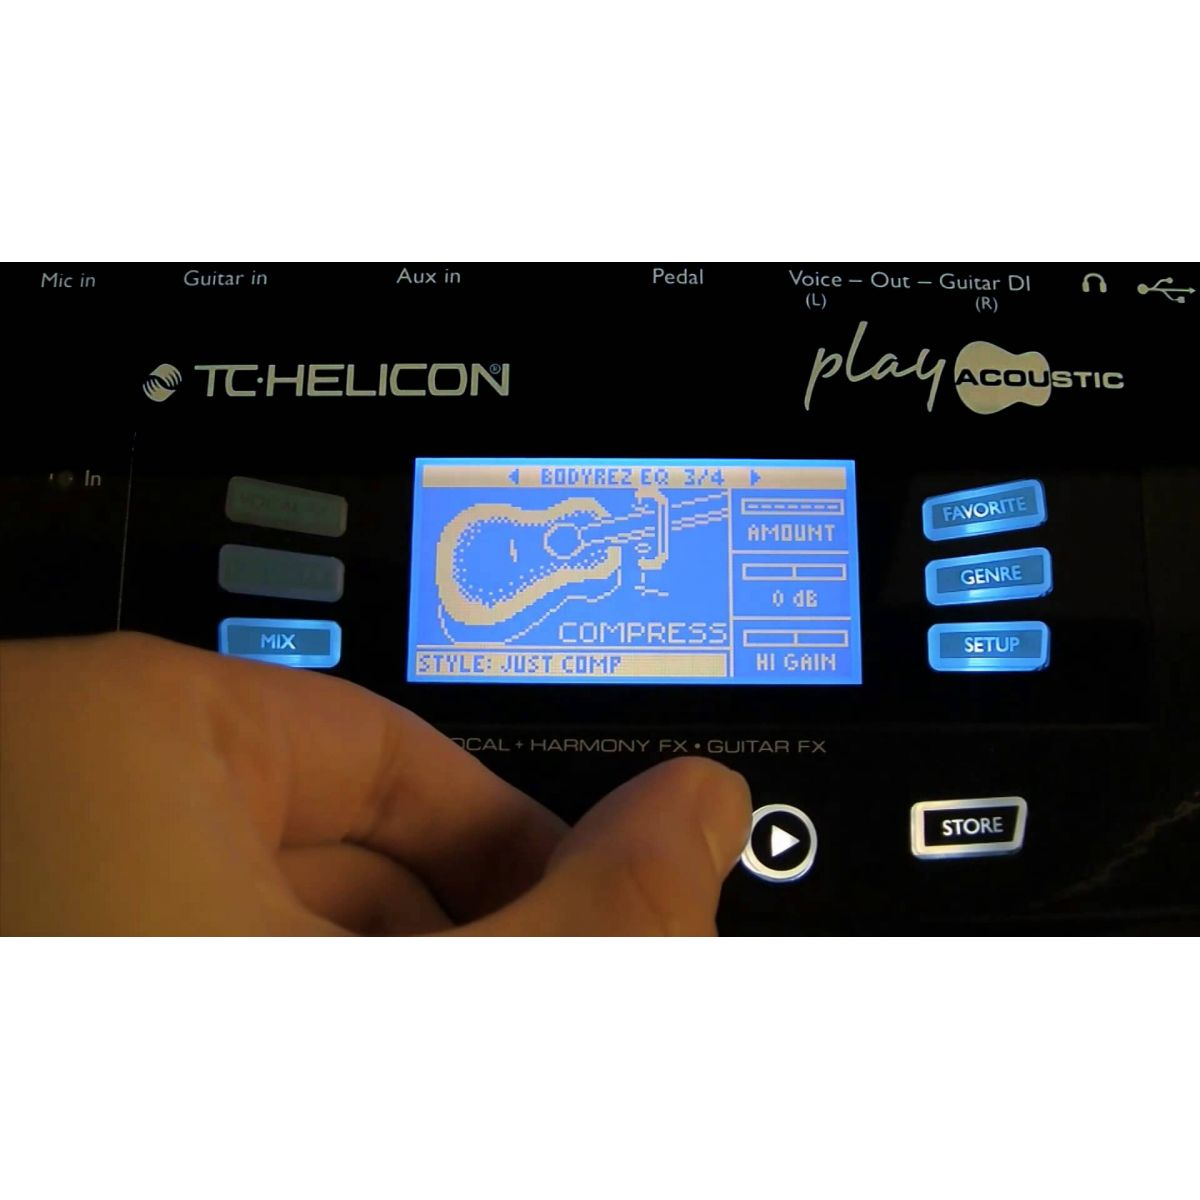 Pedaleira TC Helicon Play Acoustic para violão